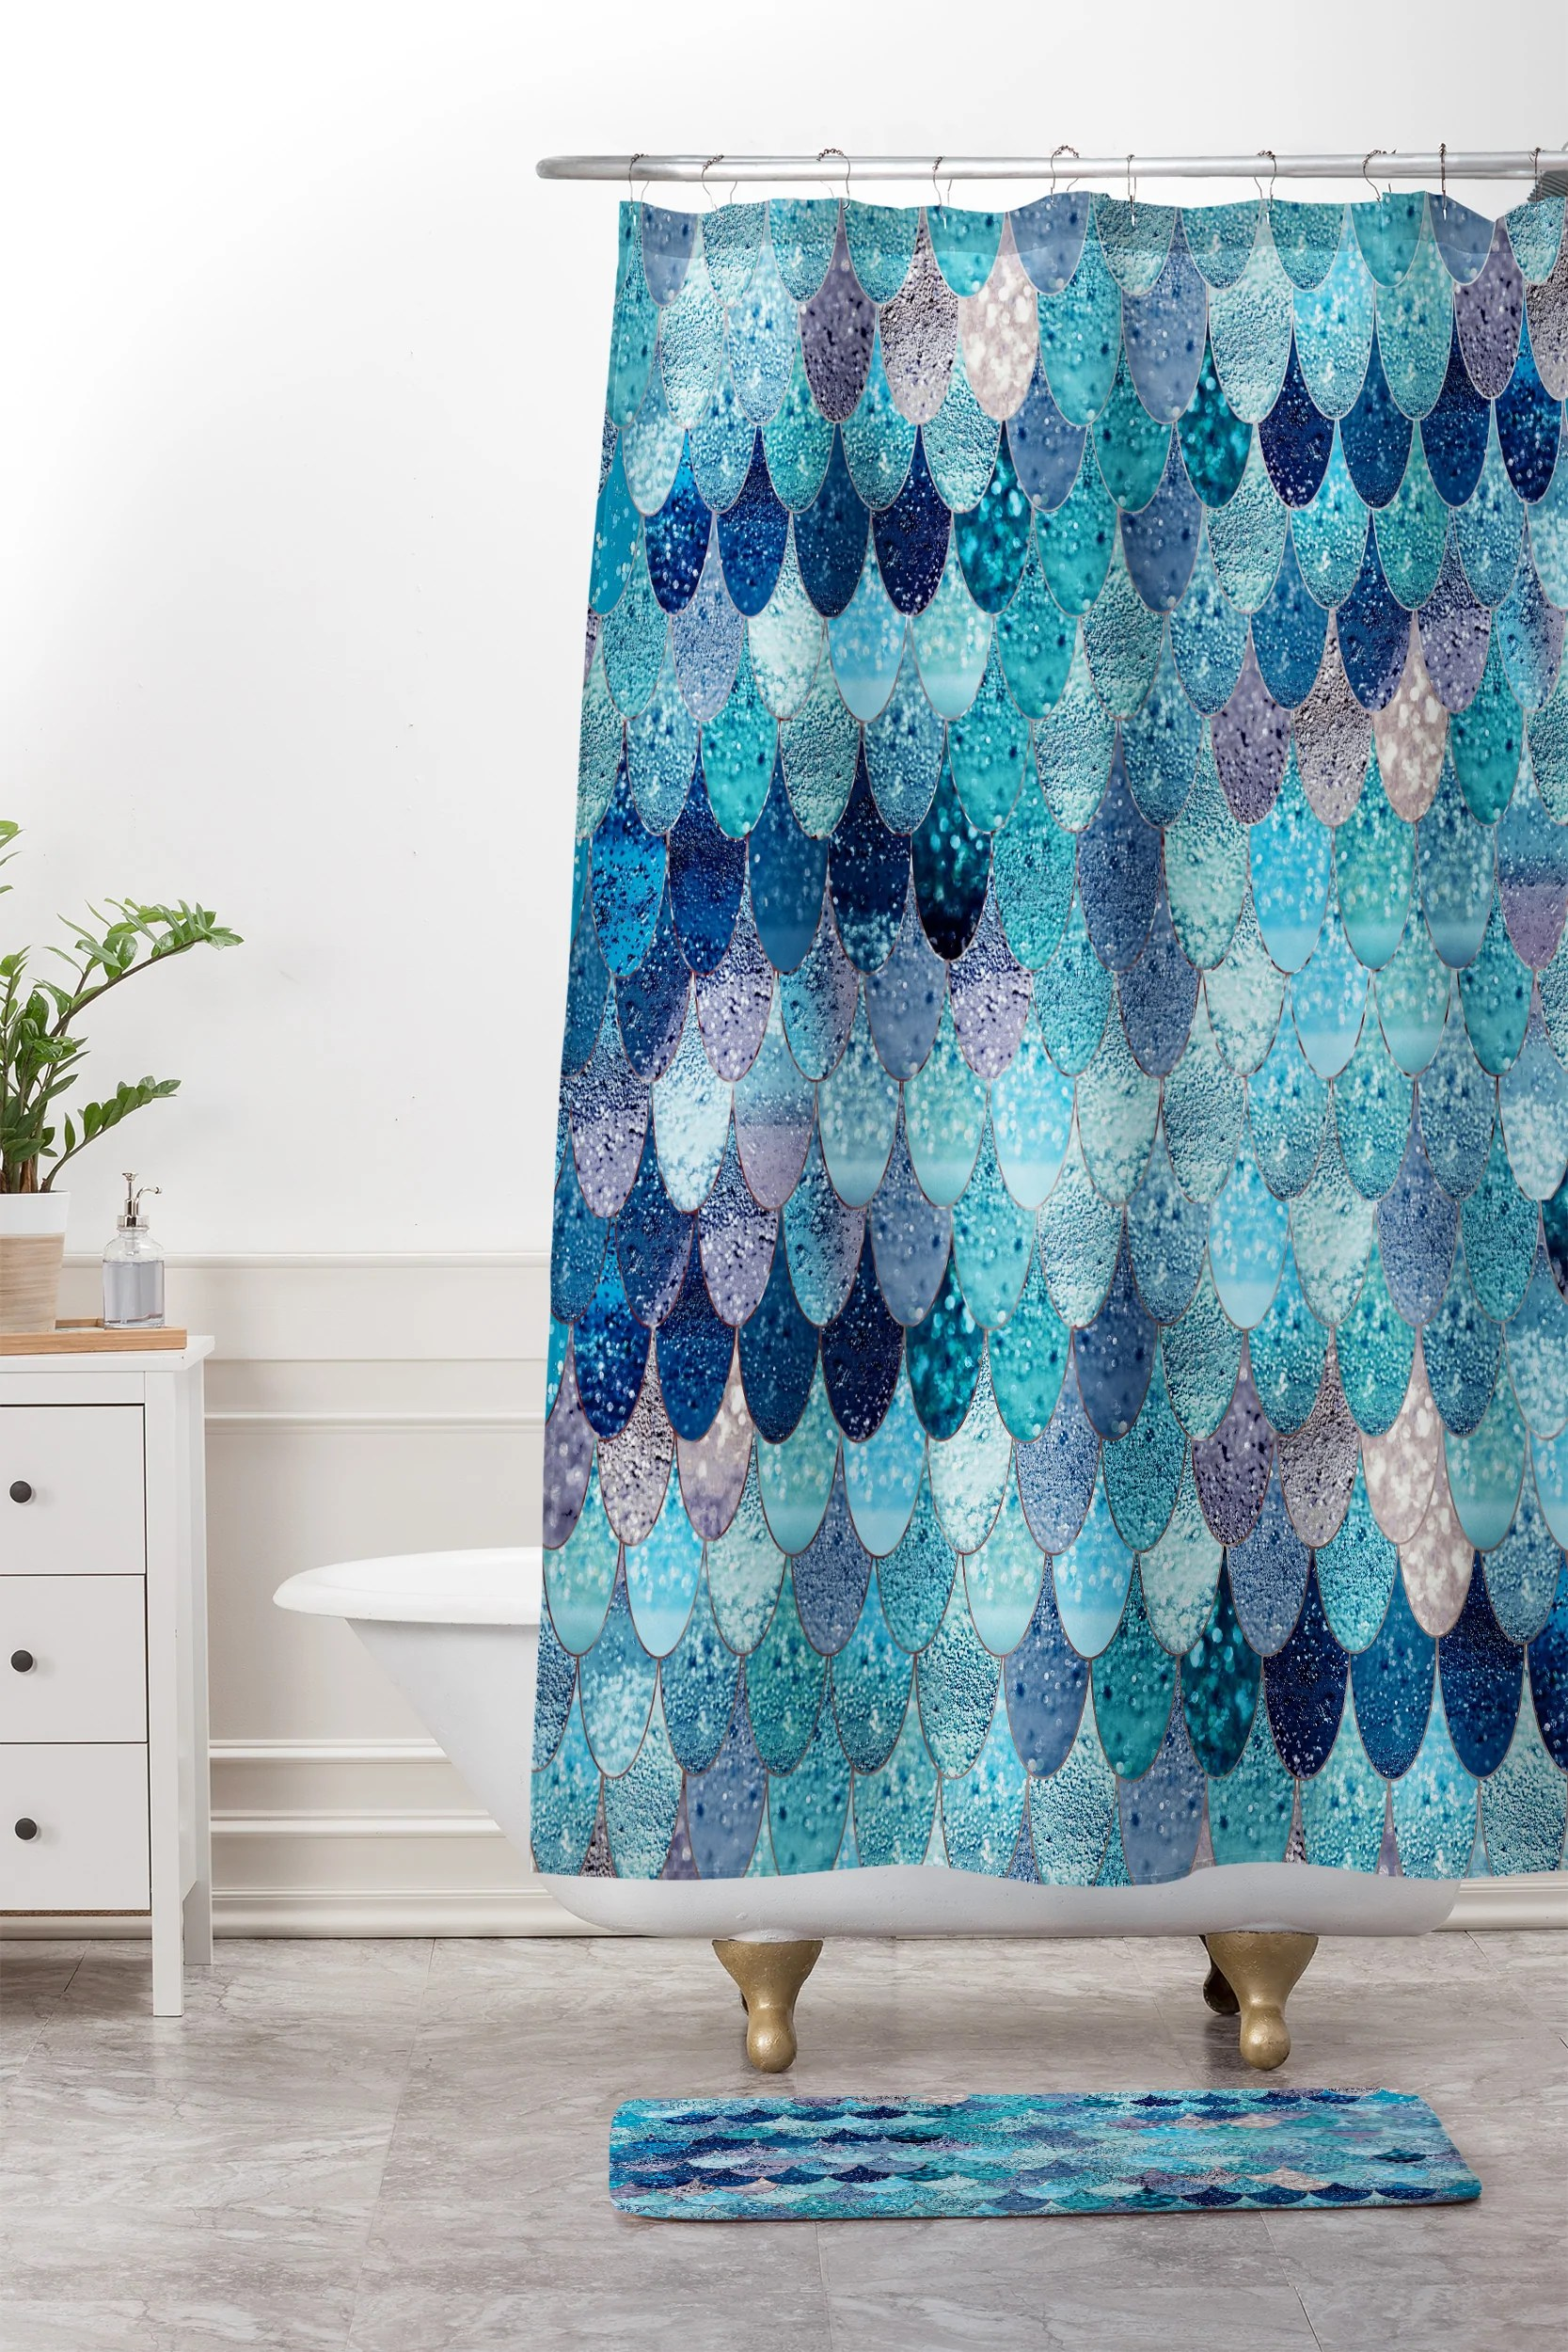 Horrible Shower Curtain Mat V1 6fc3b4a9 E978 4204 939b 44c743070800 Ombre Shower Curtain Shower Curtain Canada Monika Strigel Summer Mermaid Blue houzz 01 Teal Shower Curtain